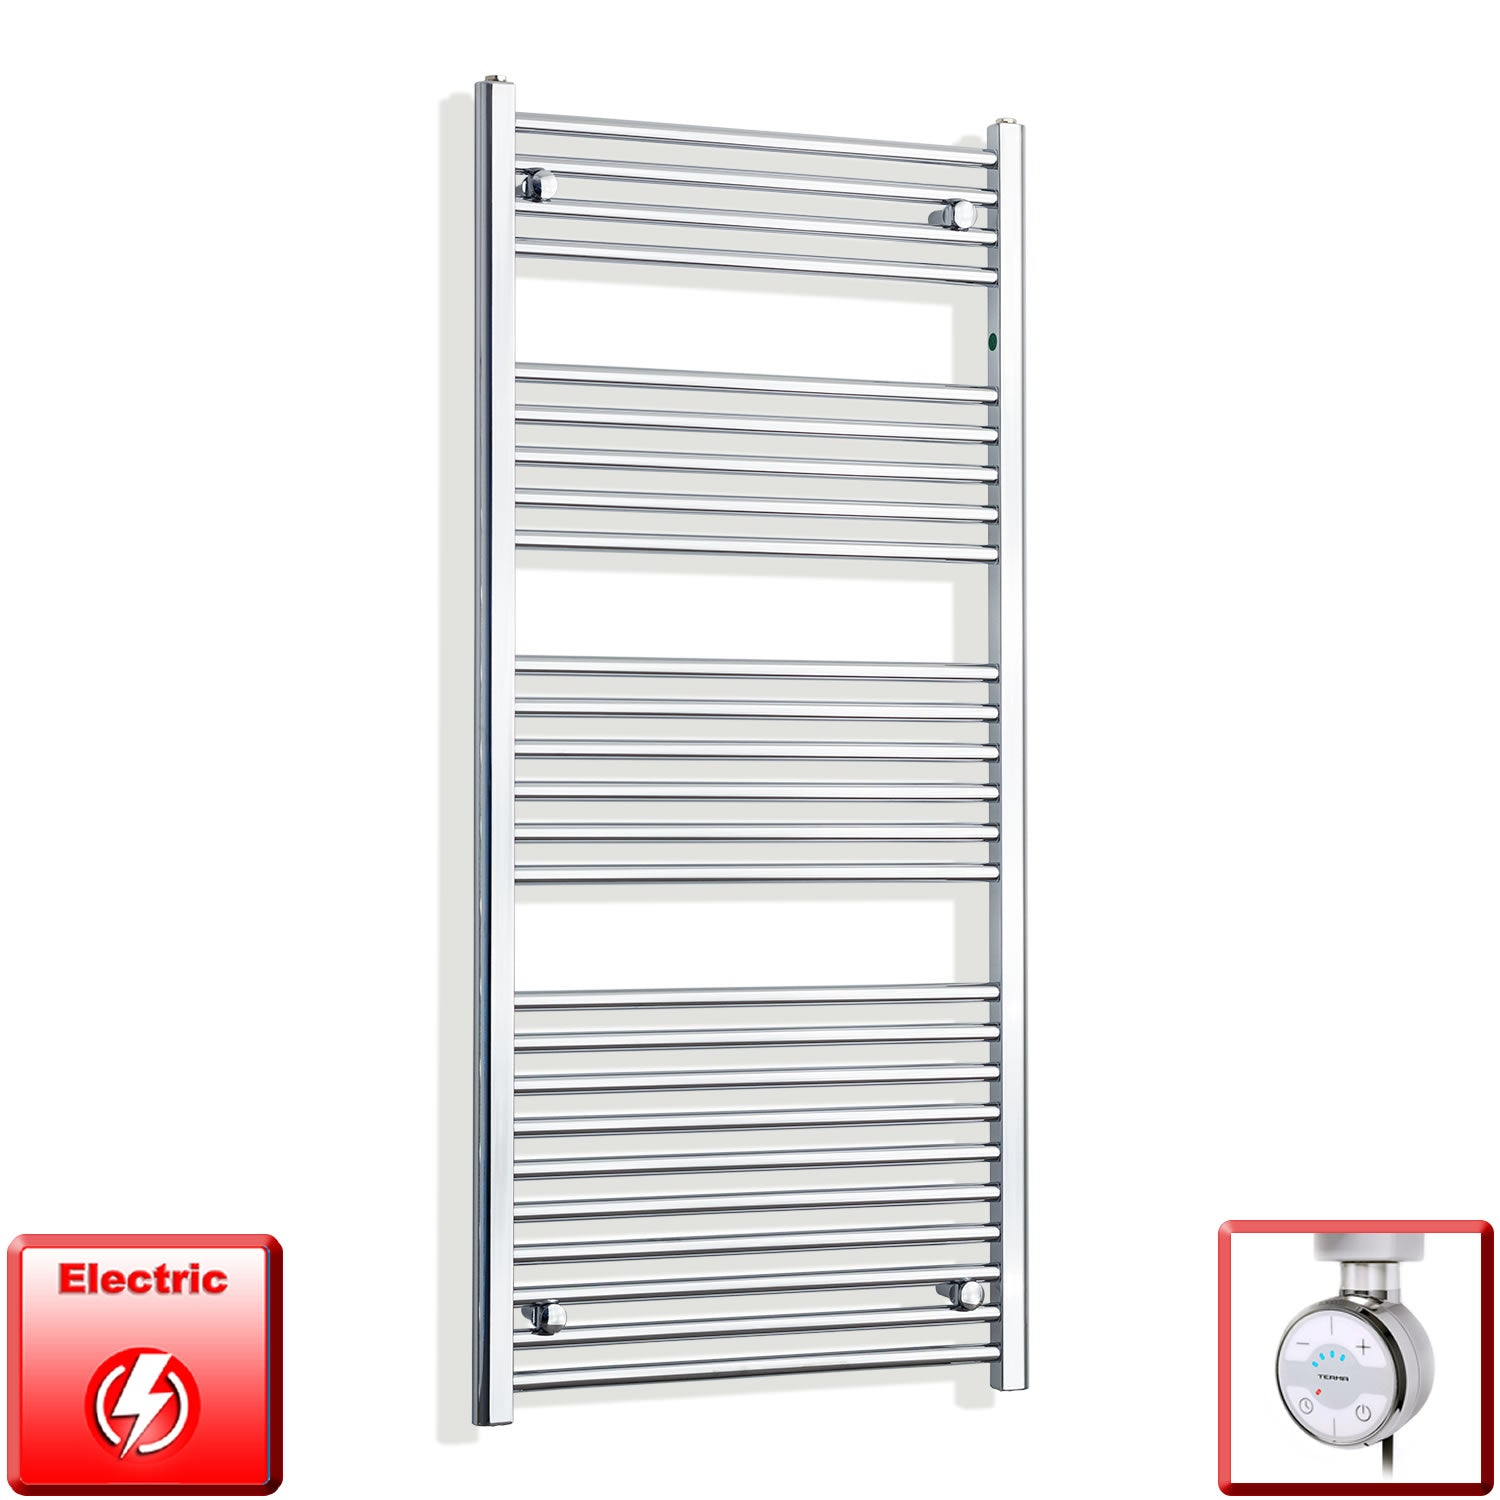 650mm Wide 1400mm High Pre-Filled Chrome Electric Towel Rail Radiator With Thermostatic MOA Element